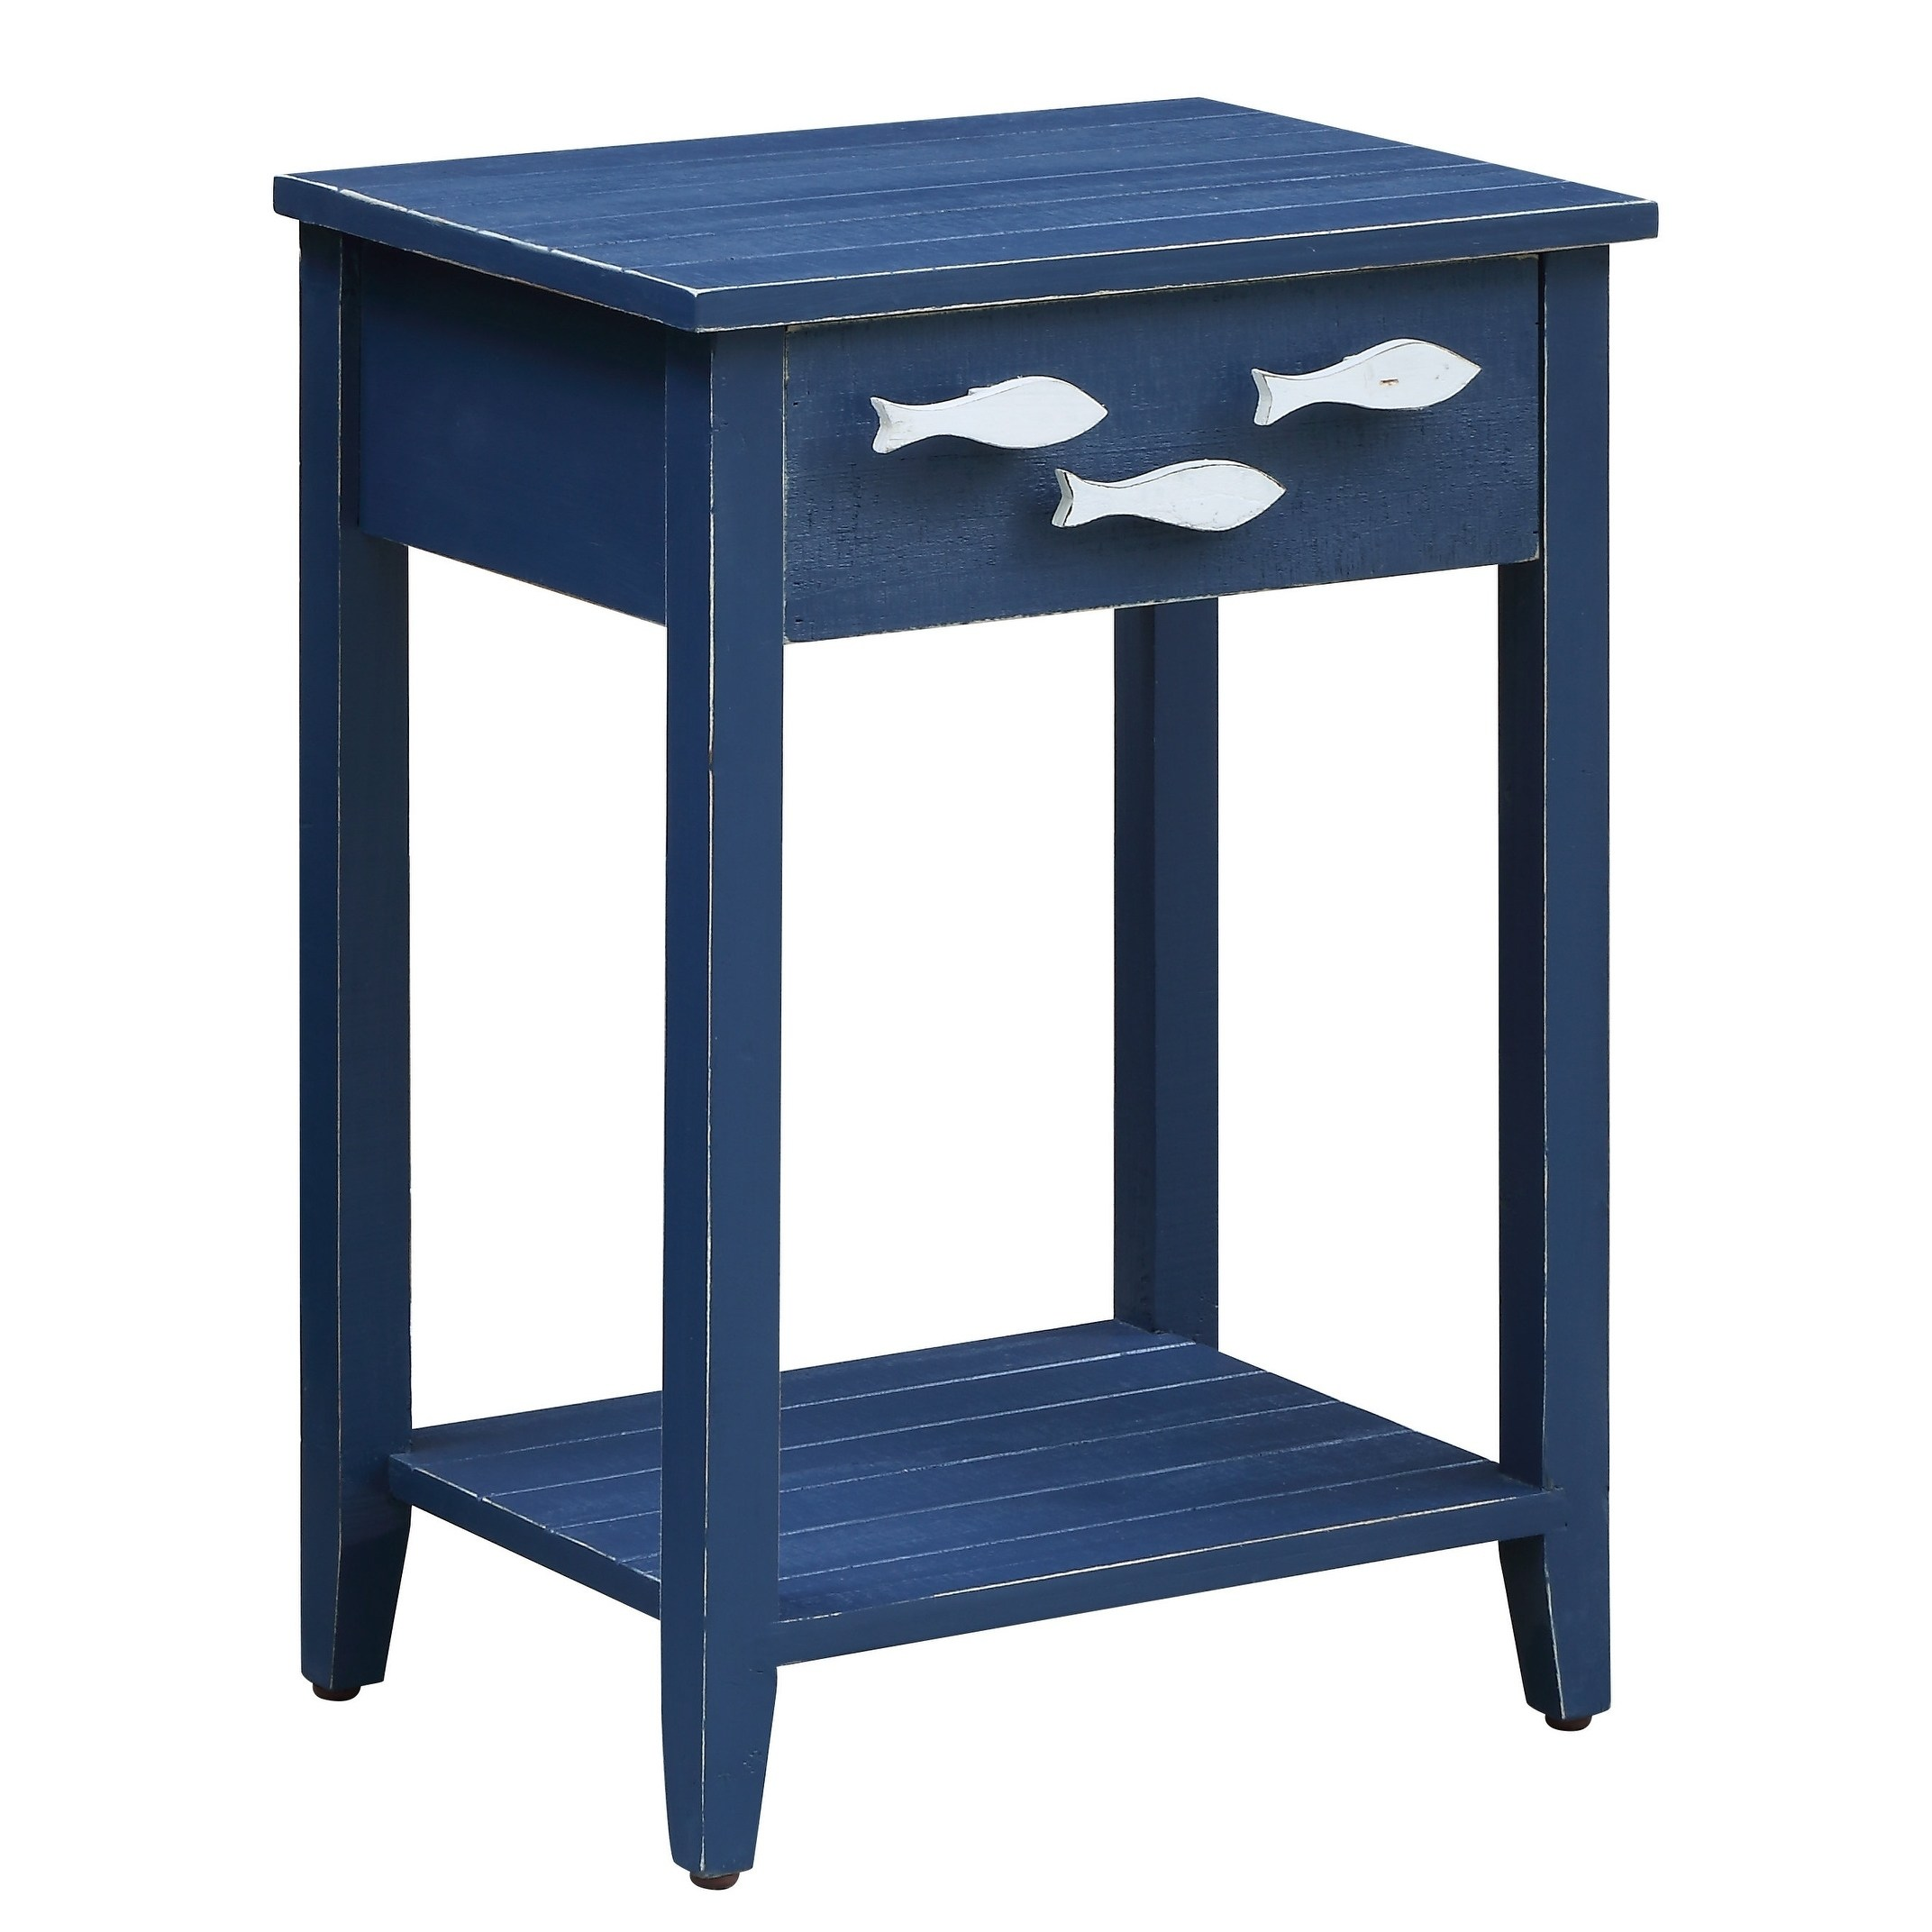 - Nautical Navy 1 Drawer Accent Table W/ Fish Hardware - Walmart.com